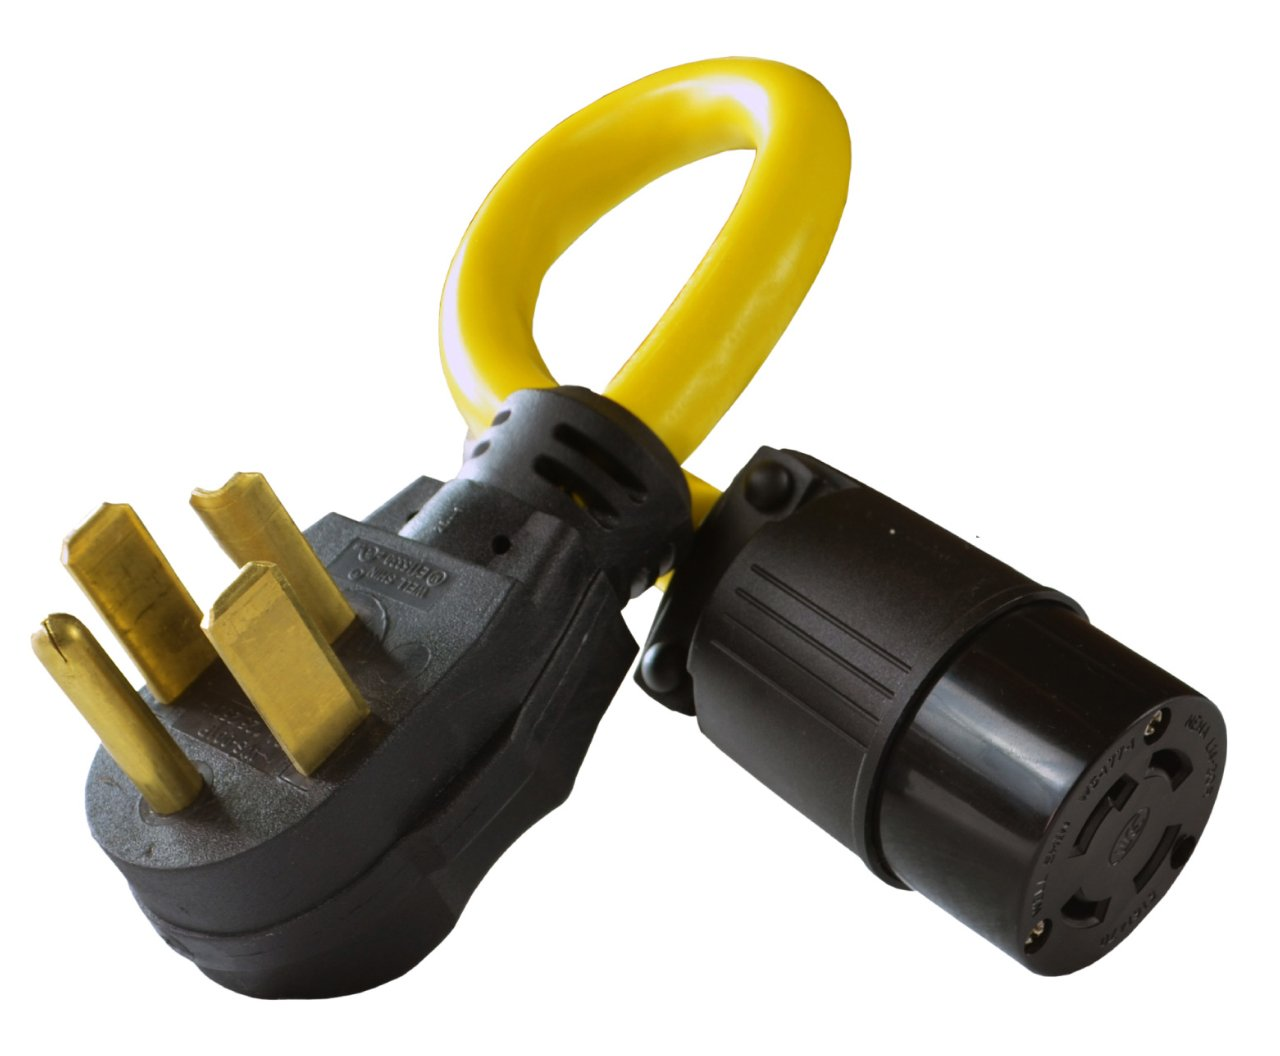 Safely Use Extension Cords When Charging An Electric Car